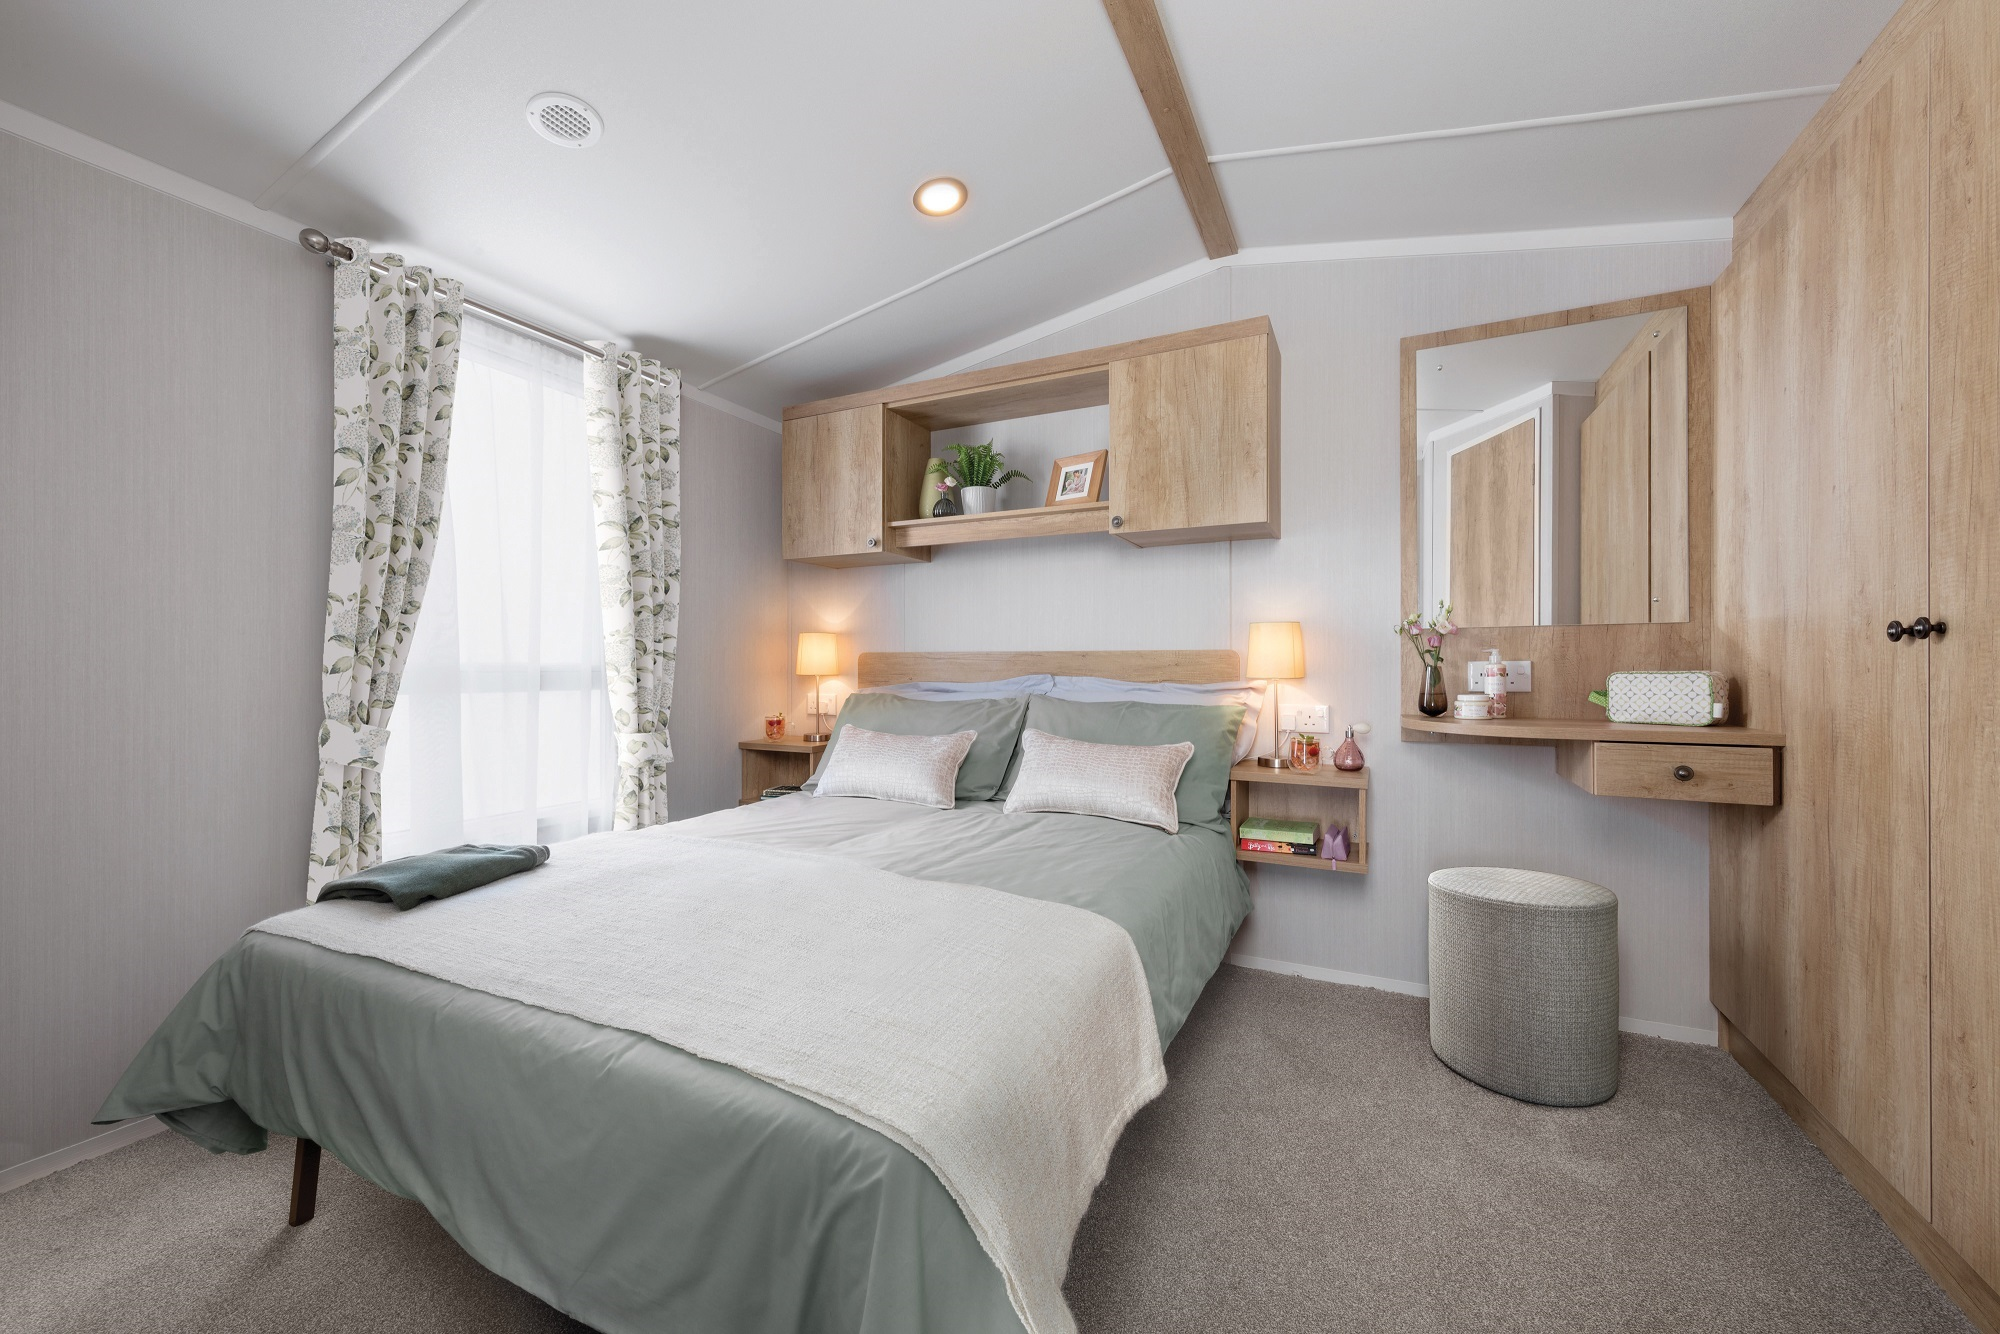 Swift Burgundy: New Static Caravans and Holiday Homes for Sale, Adderstone, Belford Large Image 4